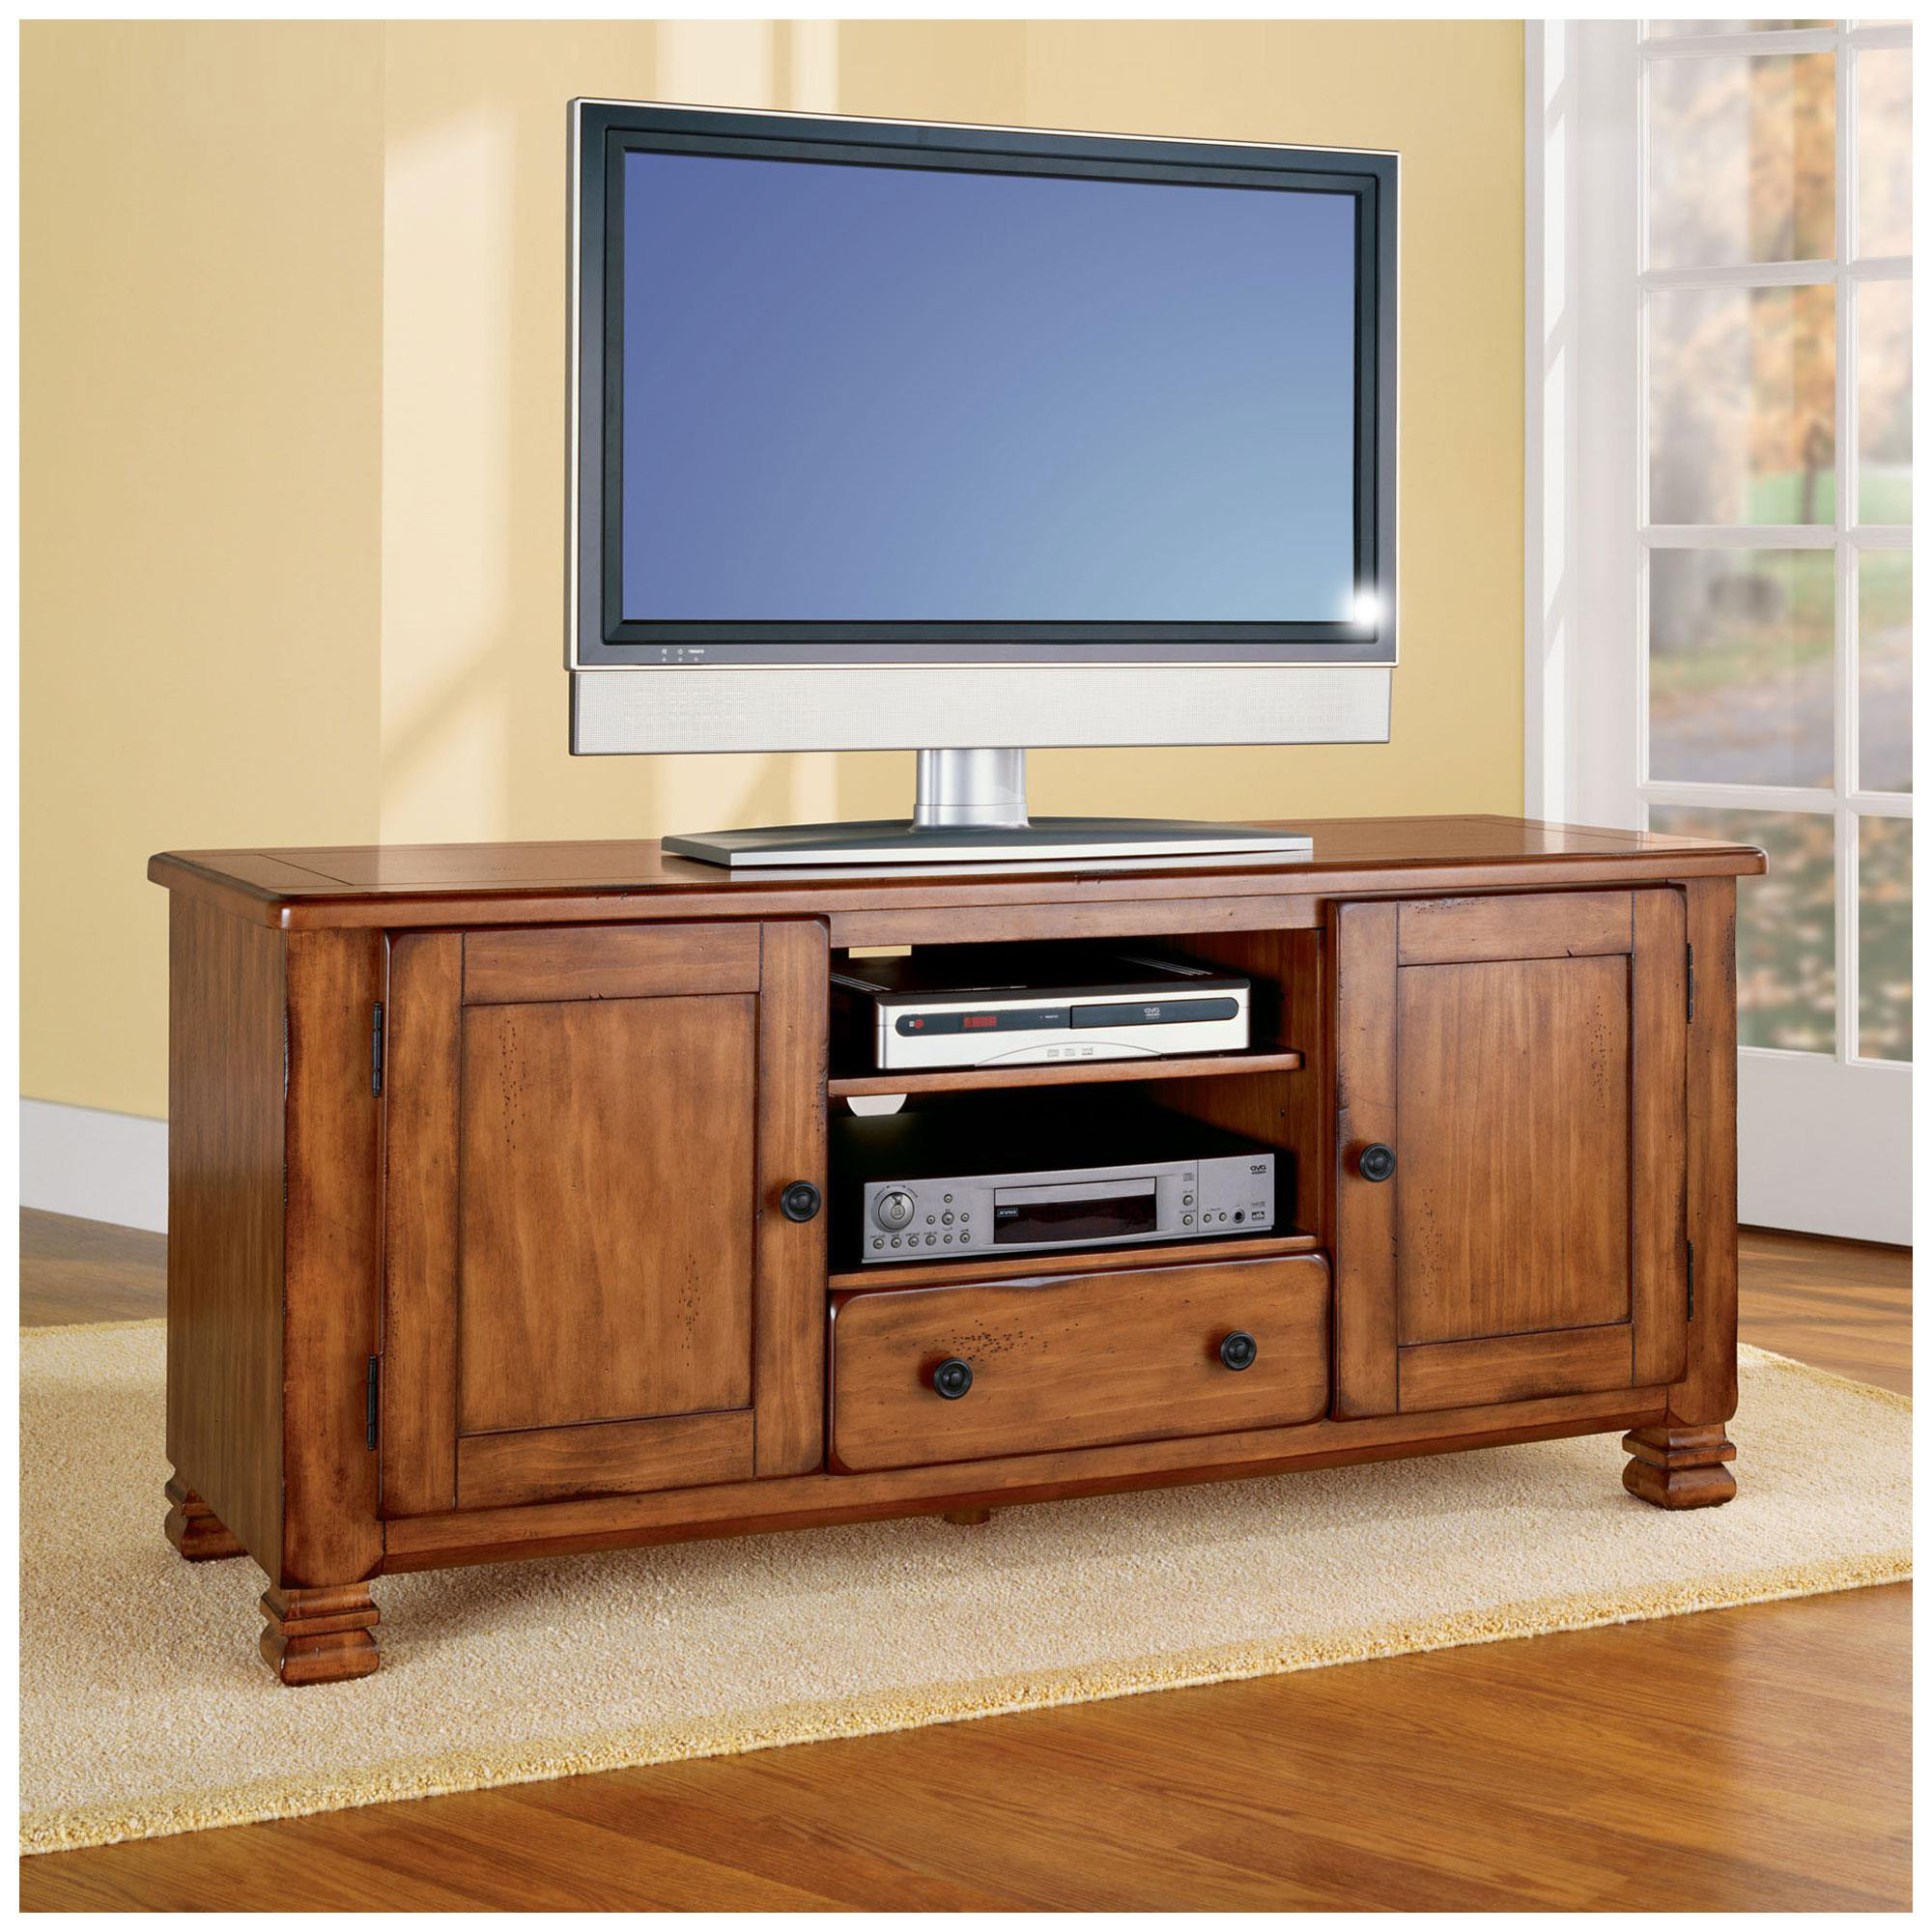 Trendy Hardwood Tv Stands With Regard To Amish Corner Tv Stand Solid Wood Console Mission Style Stands For (View 14 of 20)